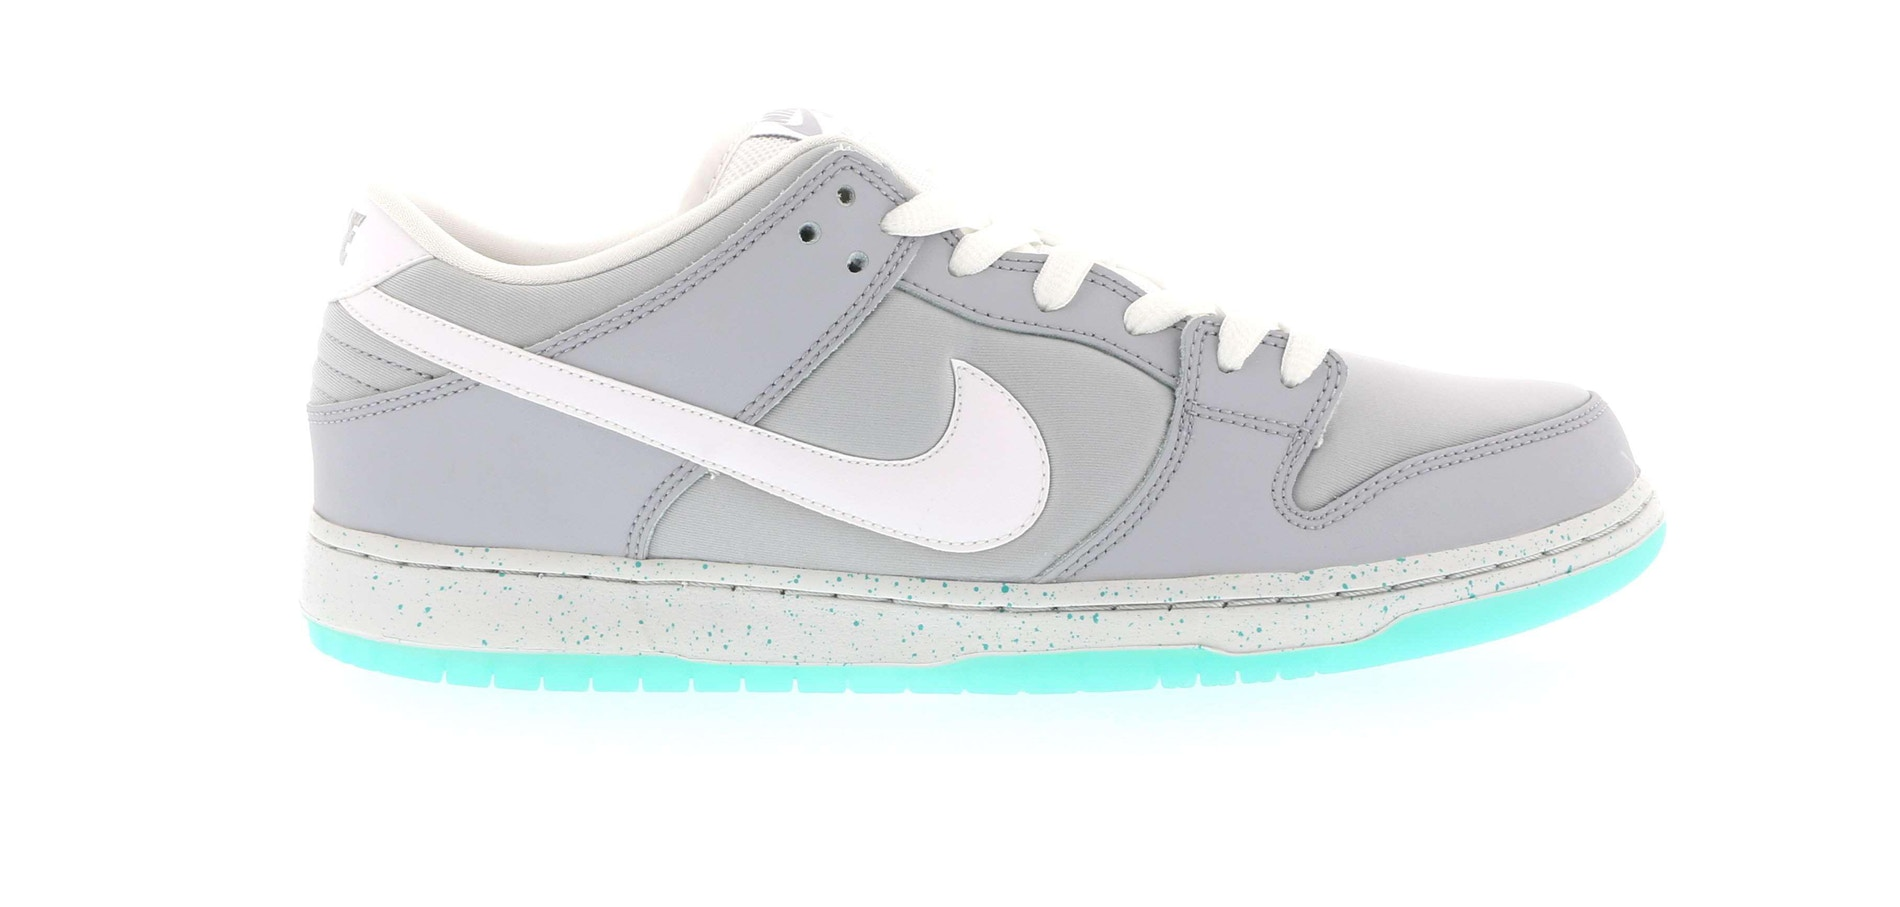 Nike Dunk SB Low Marty McFly - 313170-022